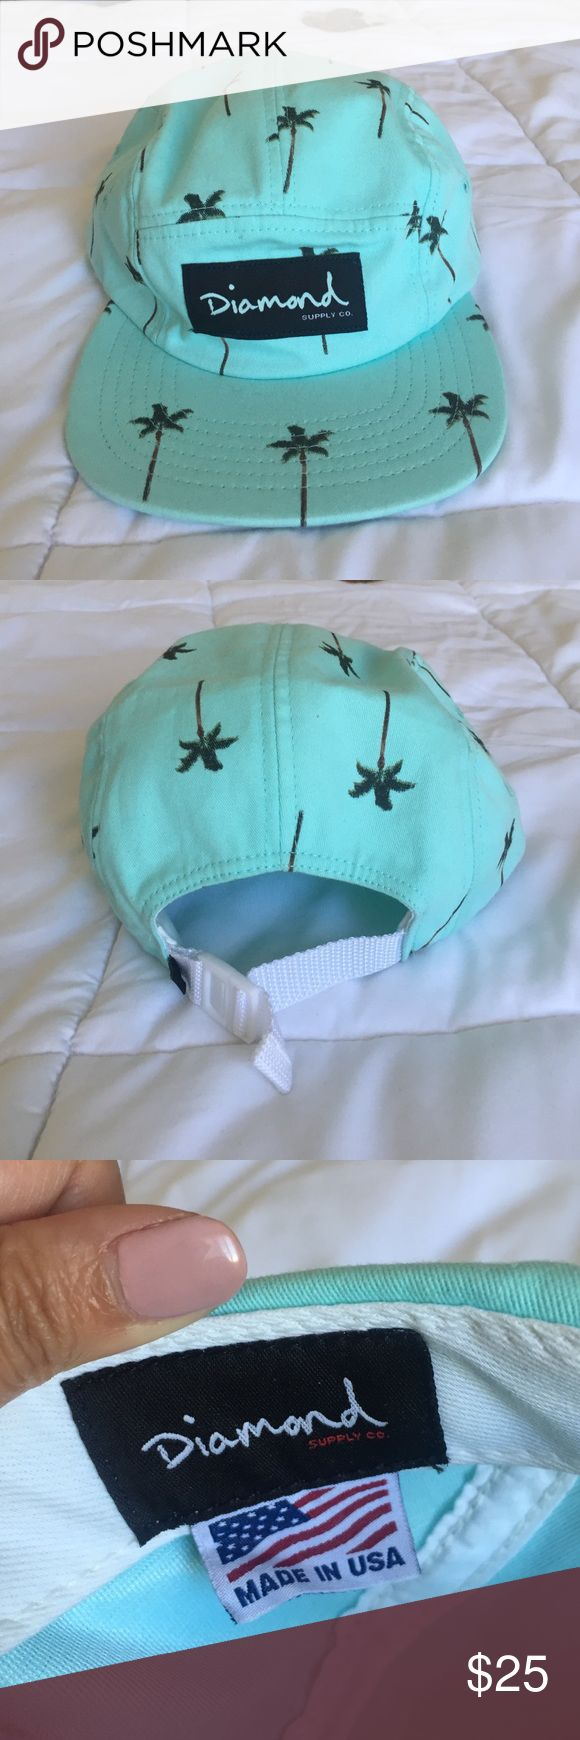 Diamond Supply Co. Palm Tree 5 panel hat Diamond Supply Co. limited edition Fairfax palm tree 5 panel hat in teal. Some scuff marks on the inside. Diamond Supply Co. Accessories Hats